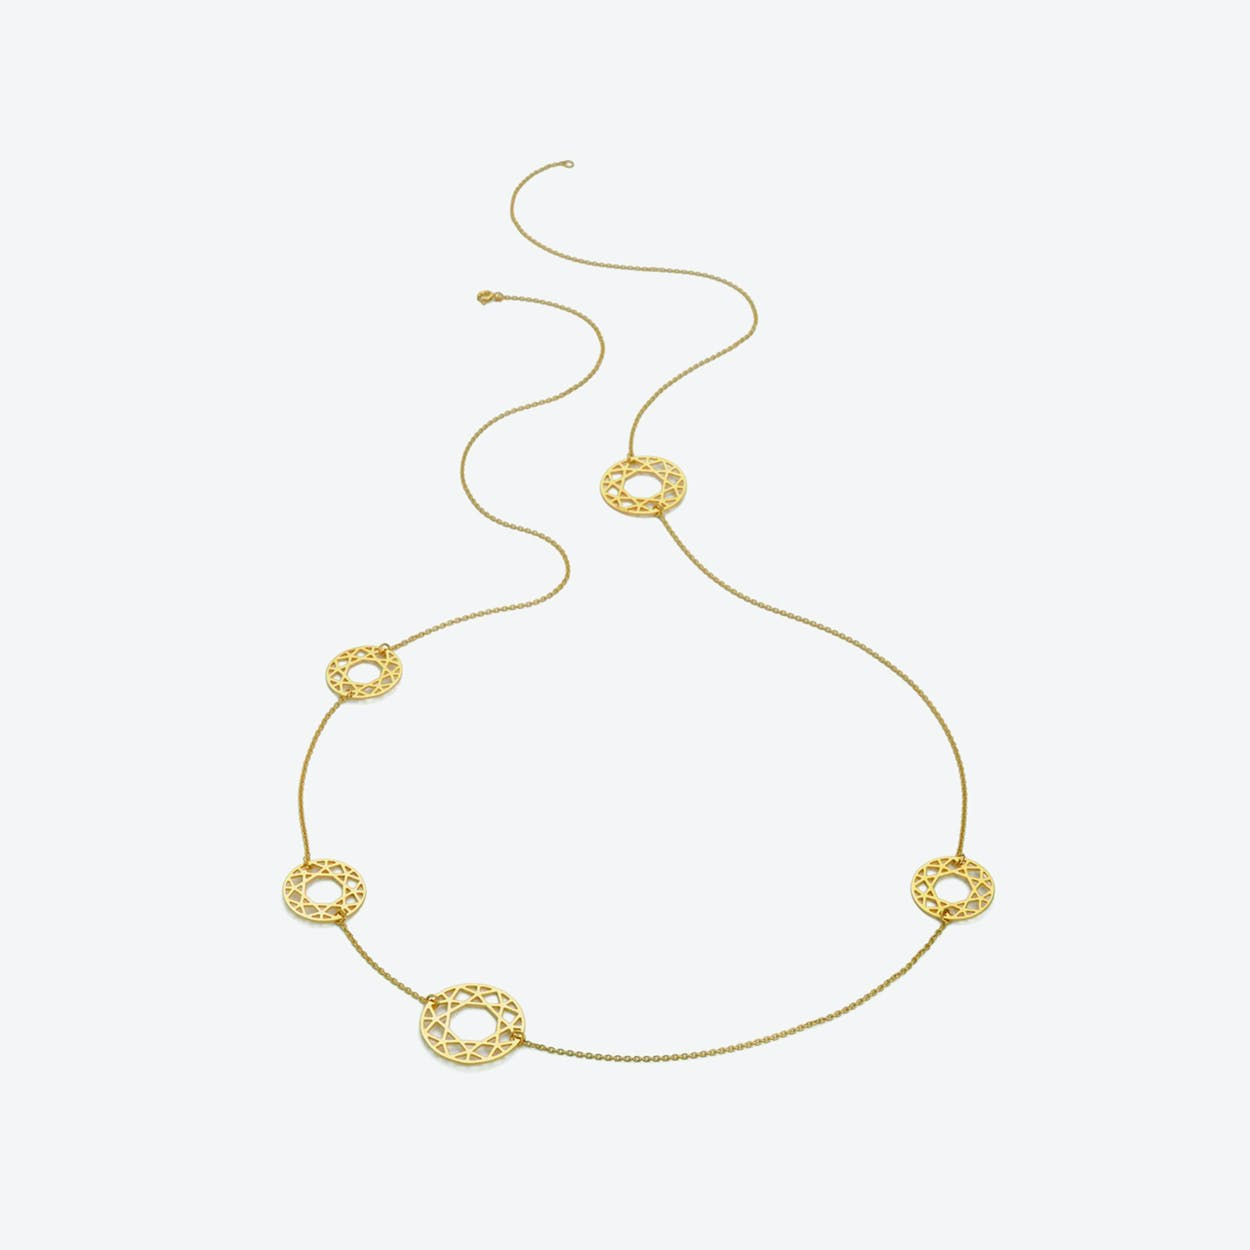 Multi-Brilliant Diamond Necklace in Gold